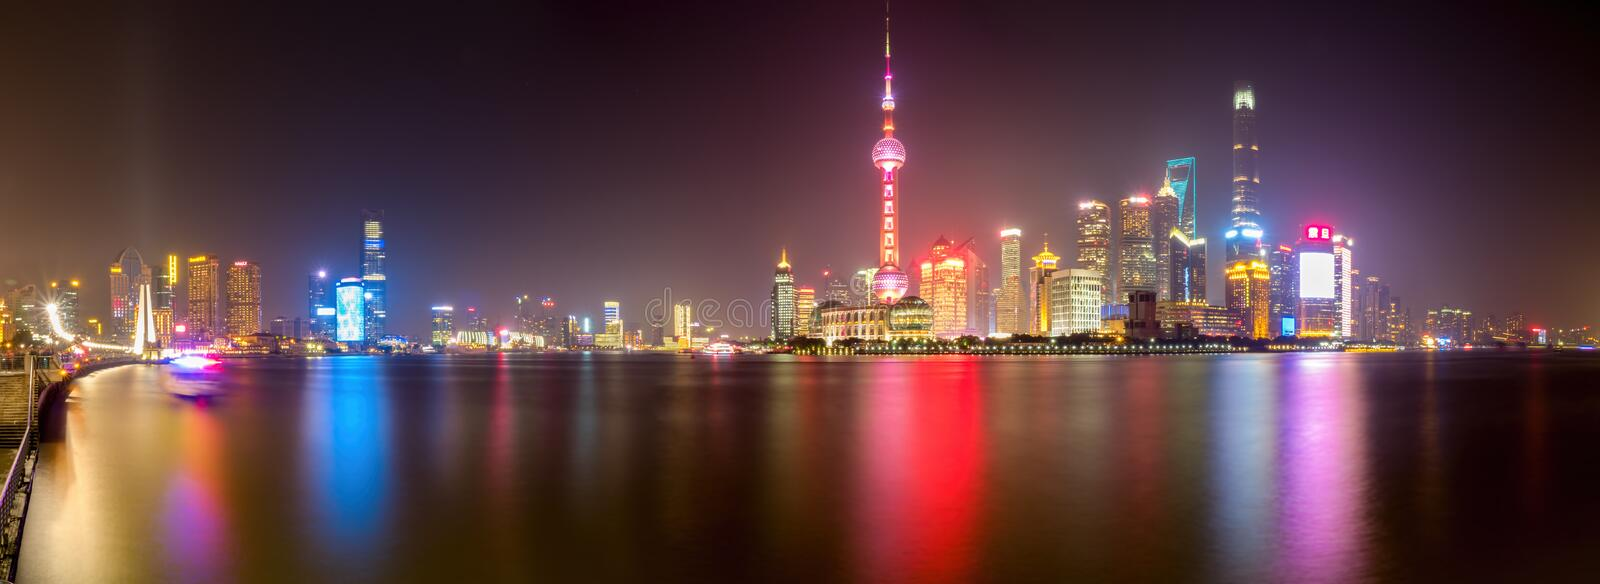 Panorama on The Bund - Shanghai City skyline by night royalty free stock images